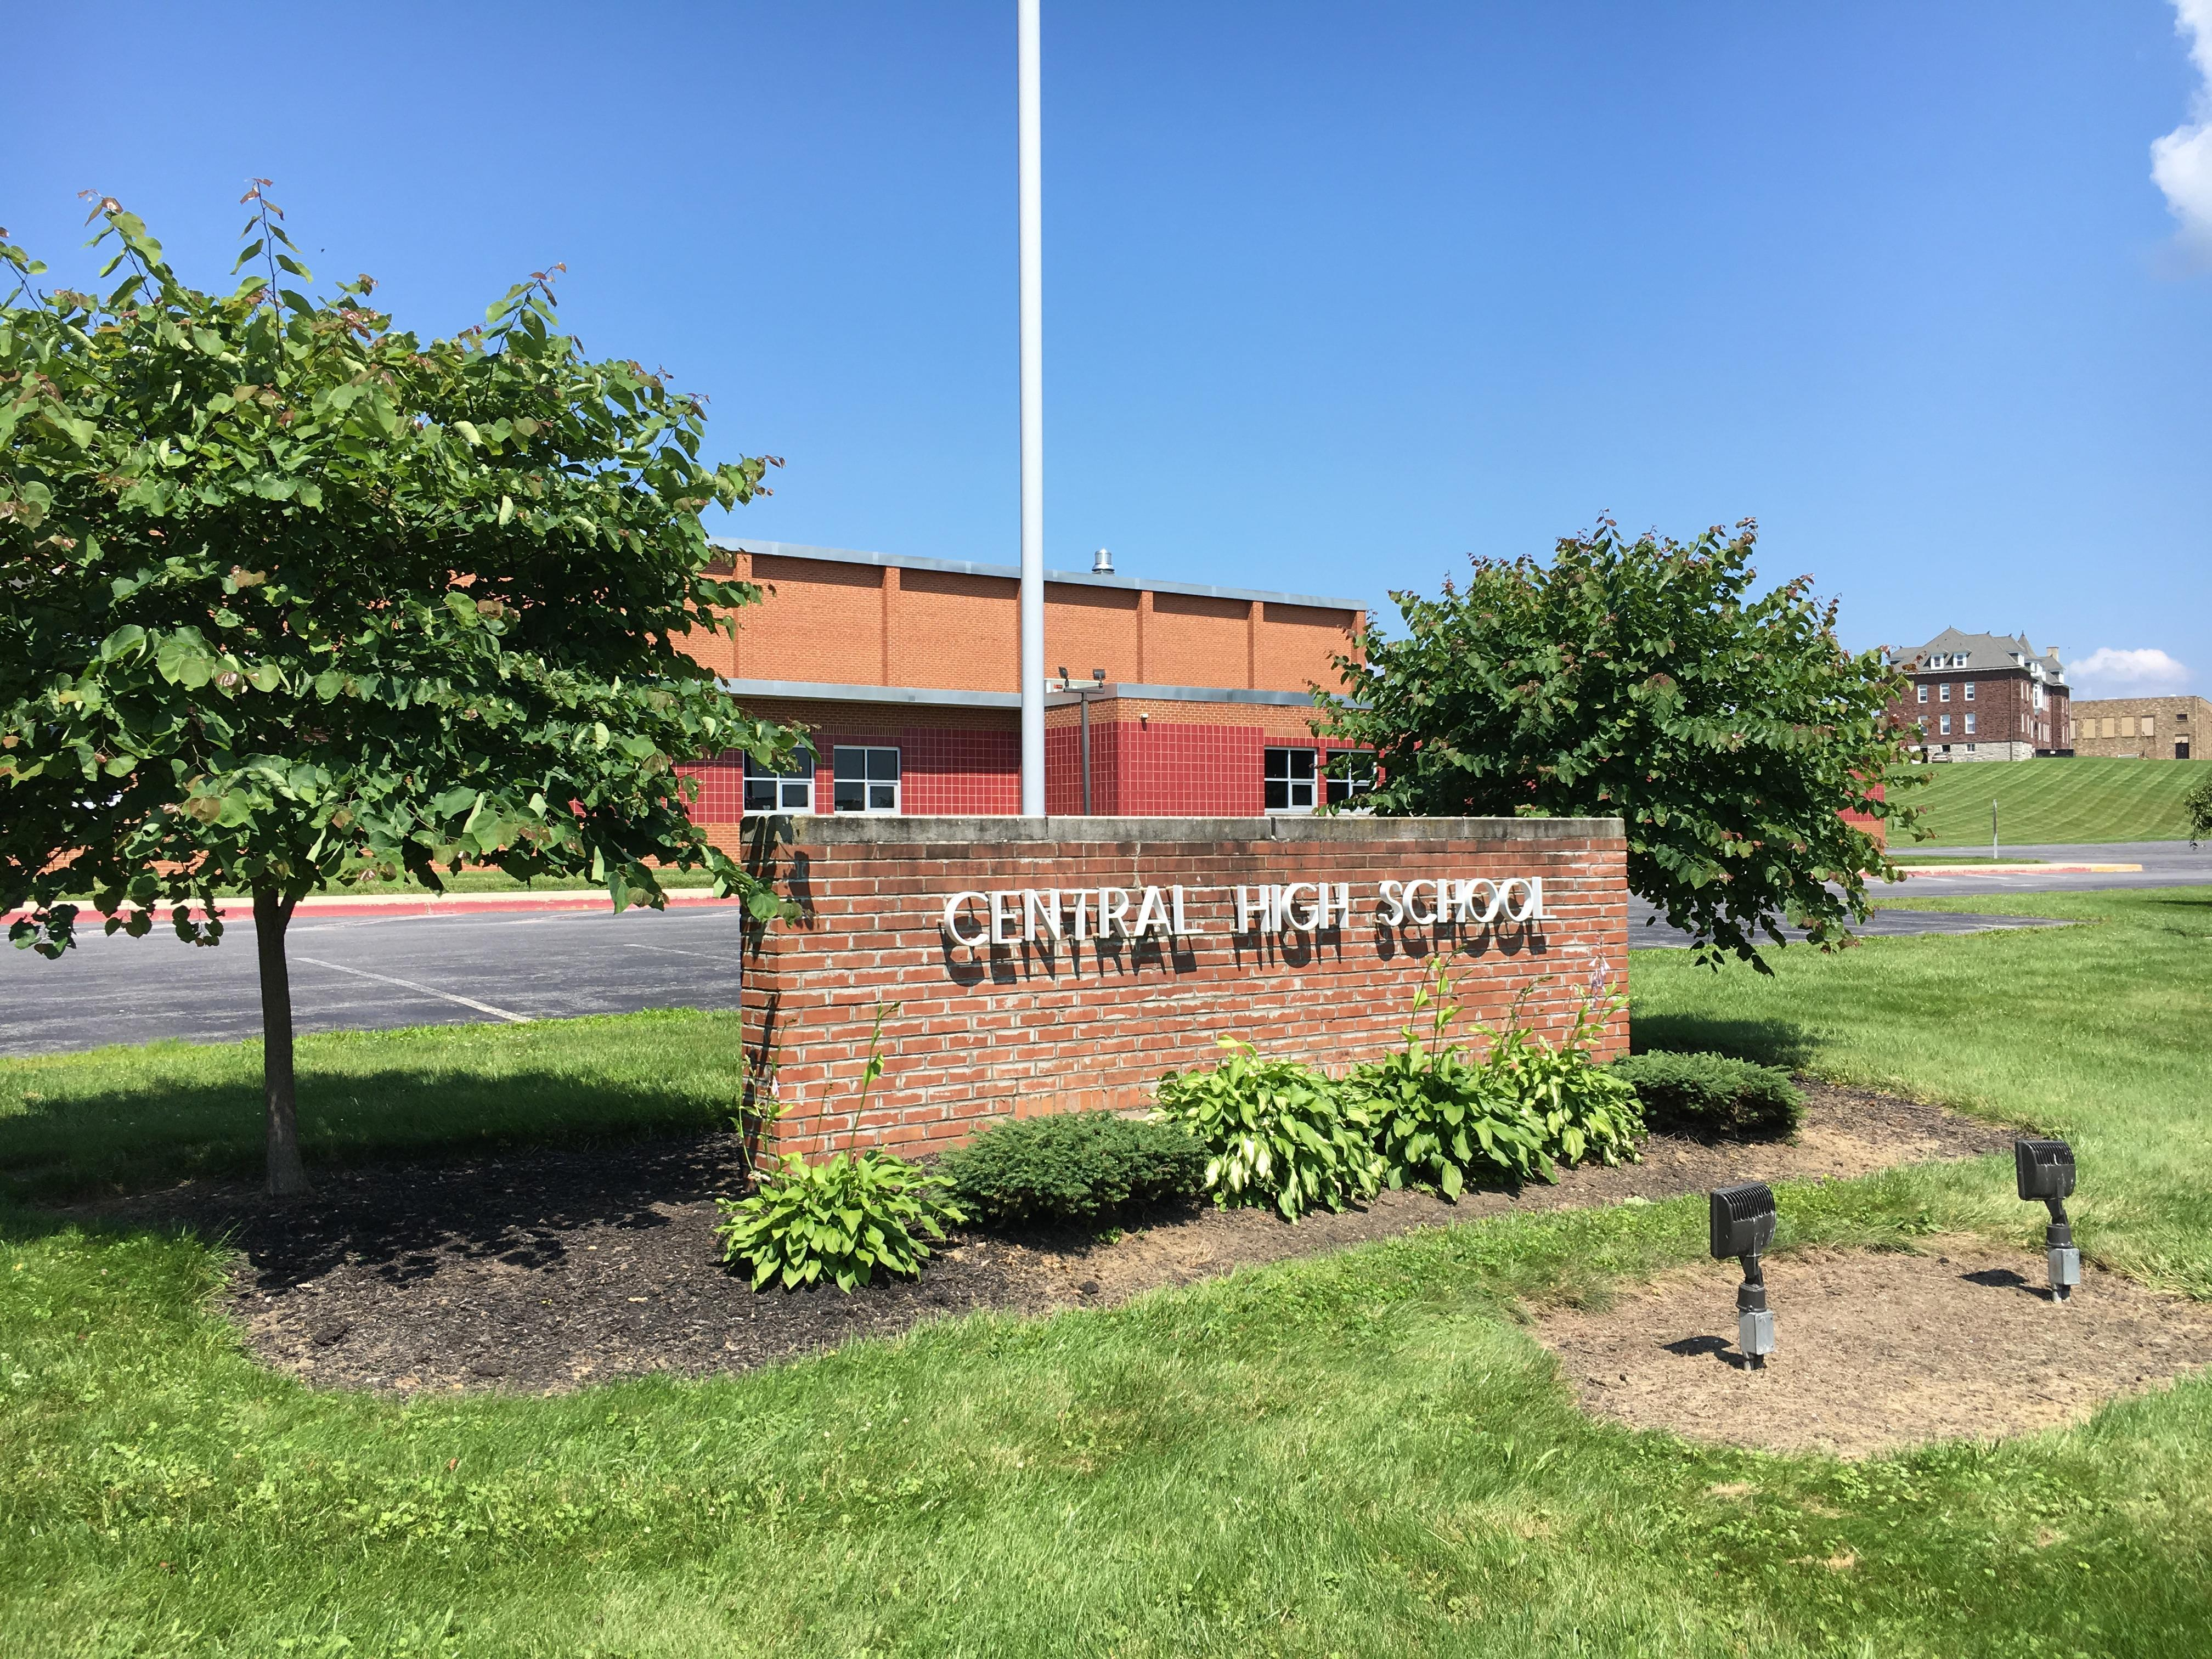 Central High School Sign at Front Entrance